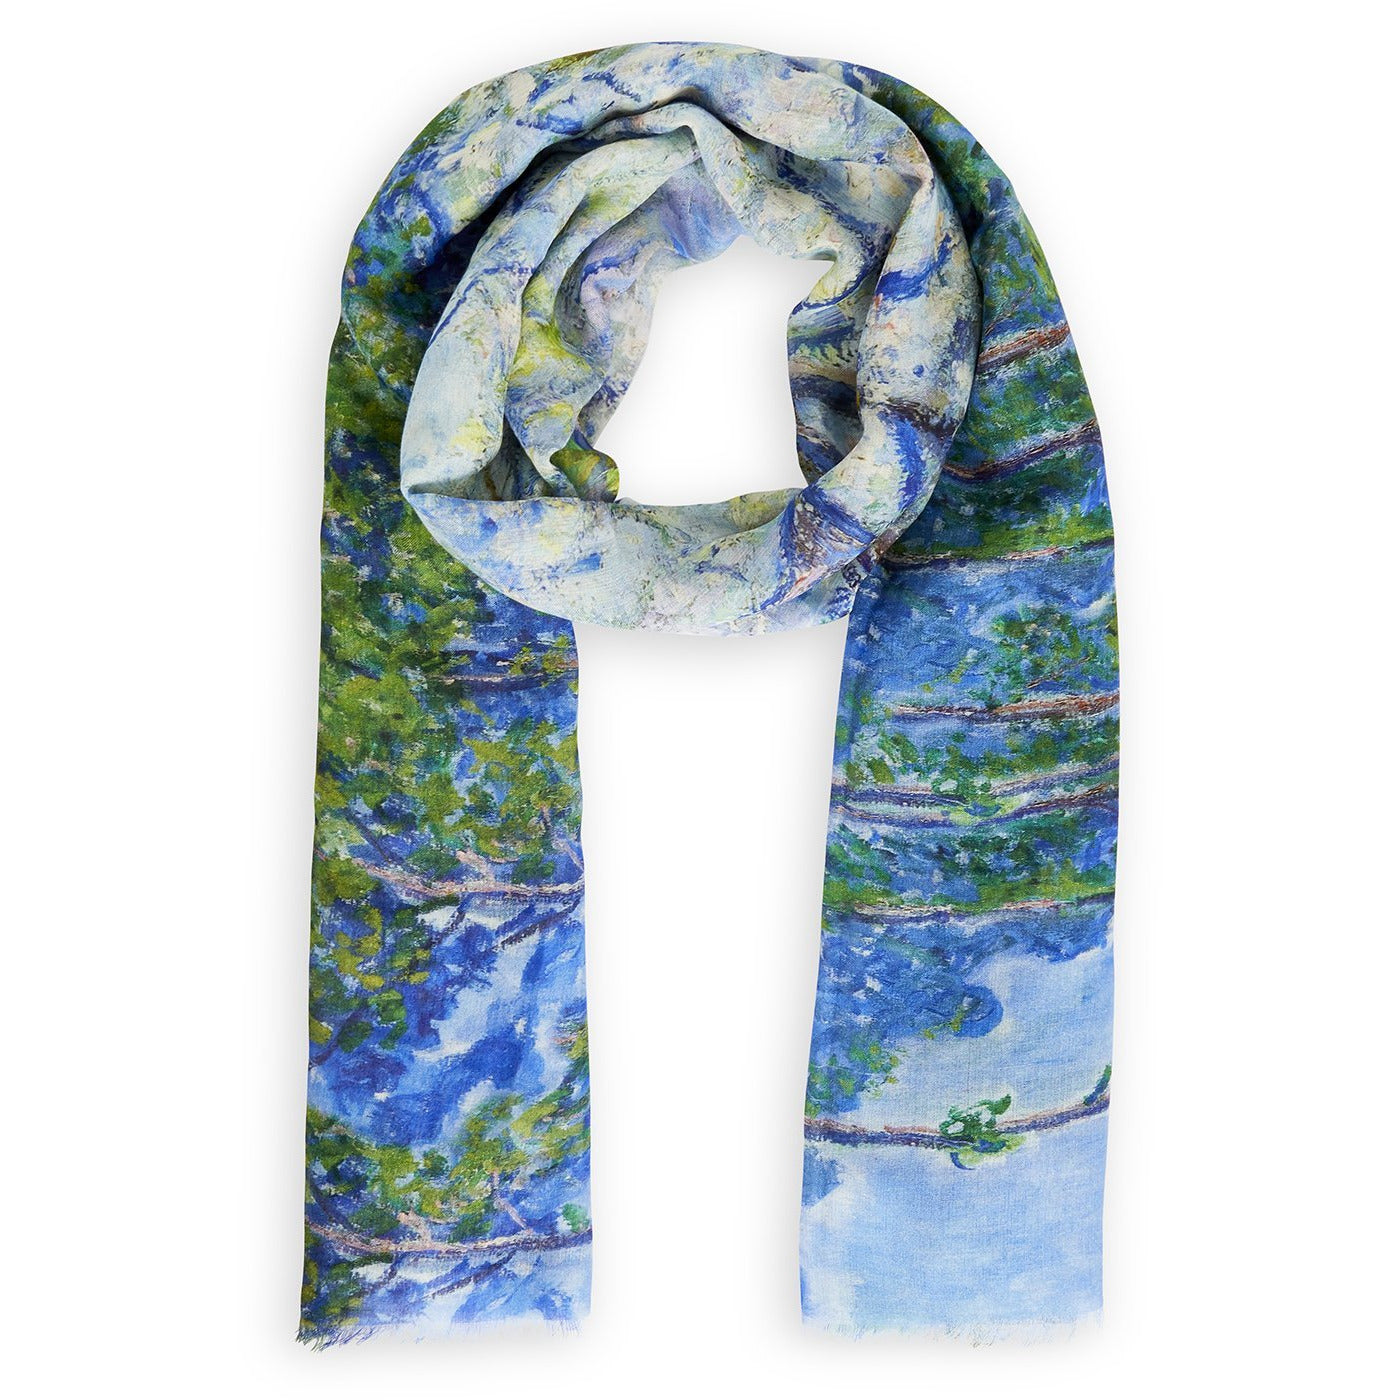 A product image depicting Monet's Trees - Silk scarf